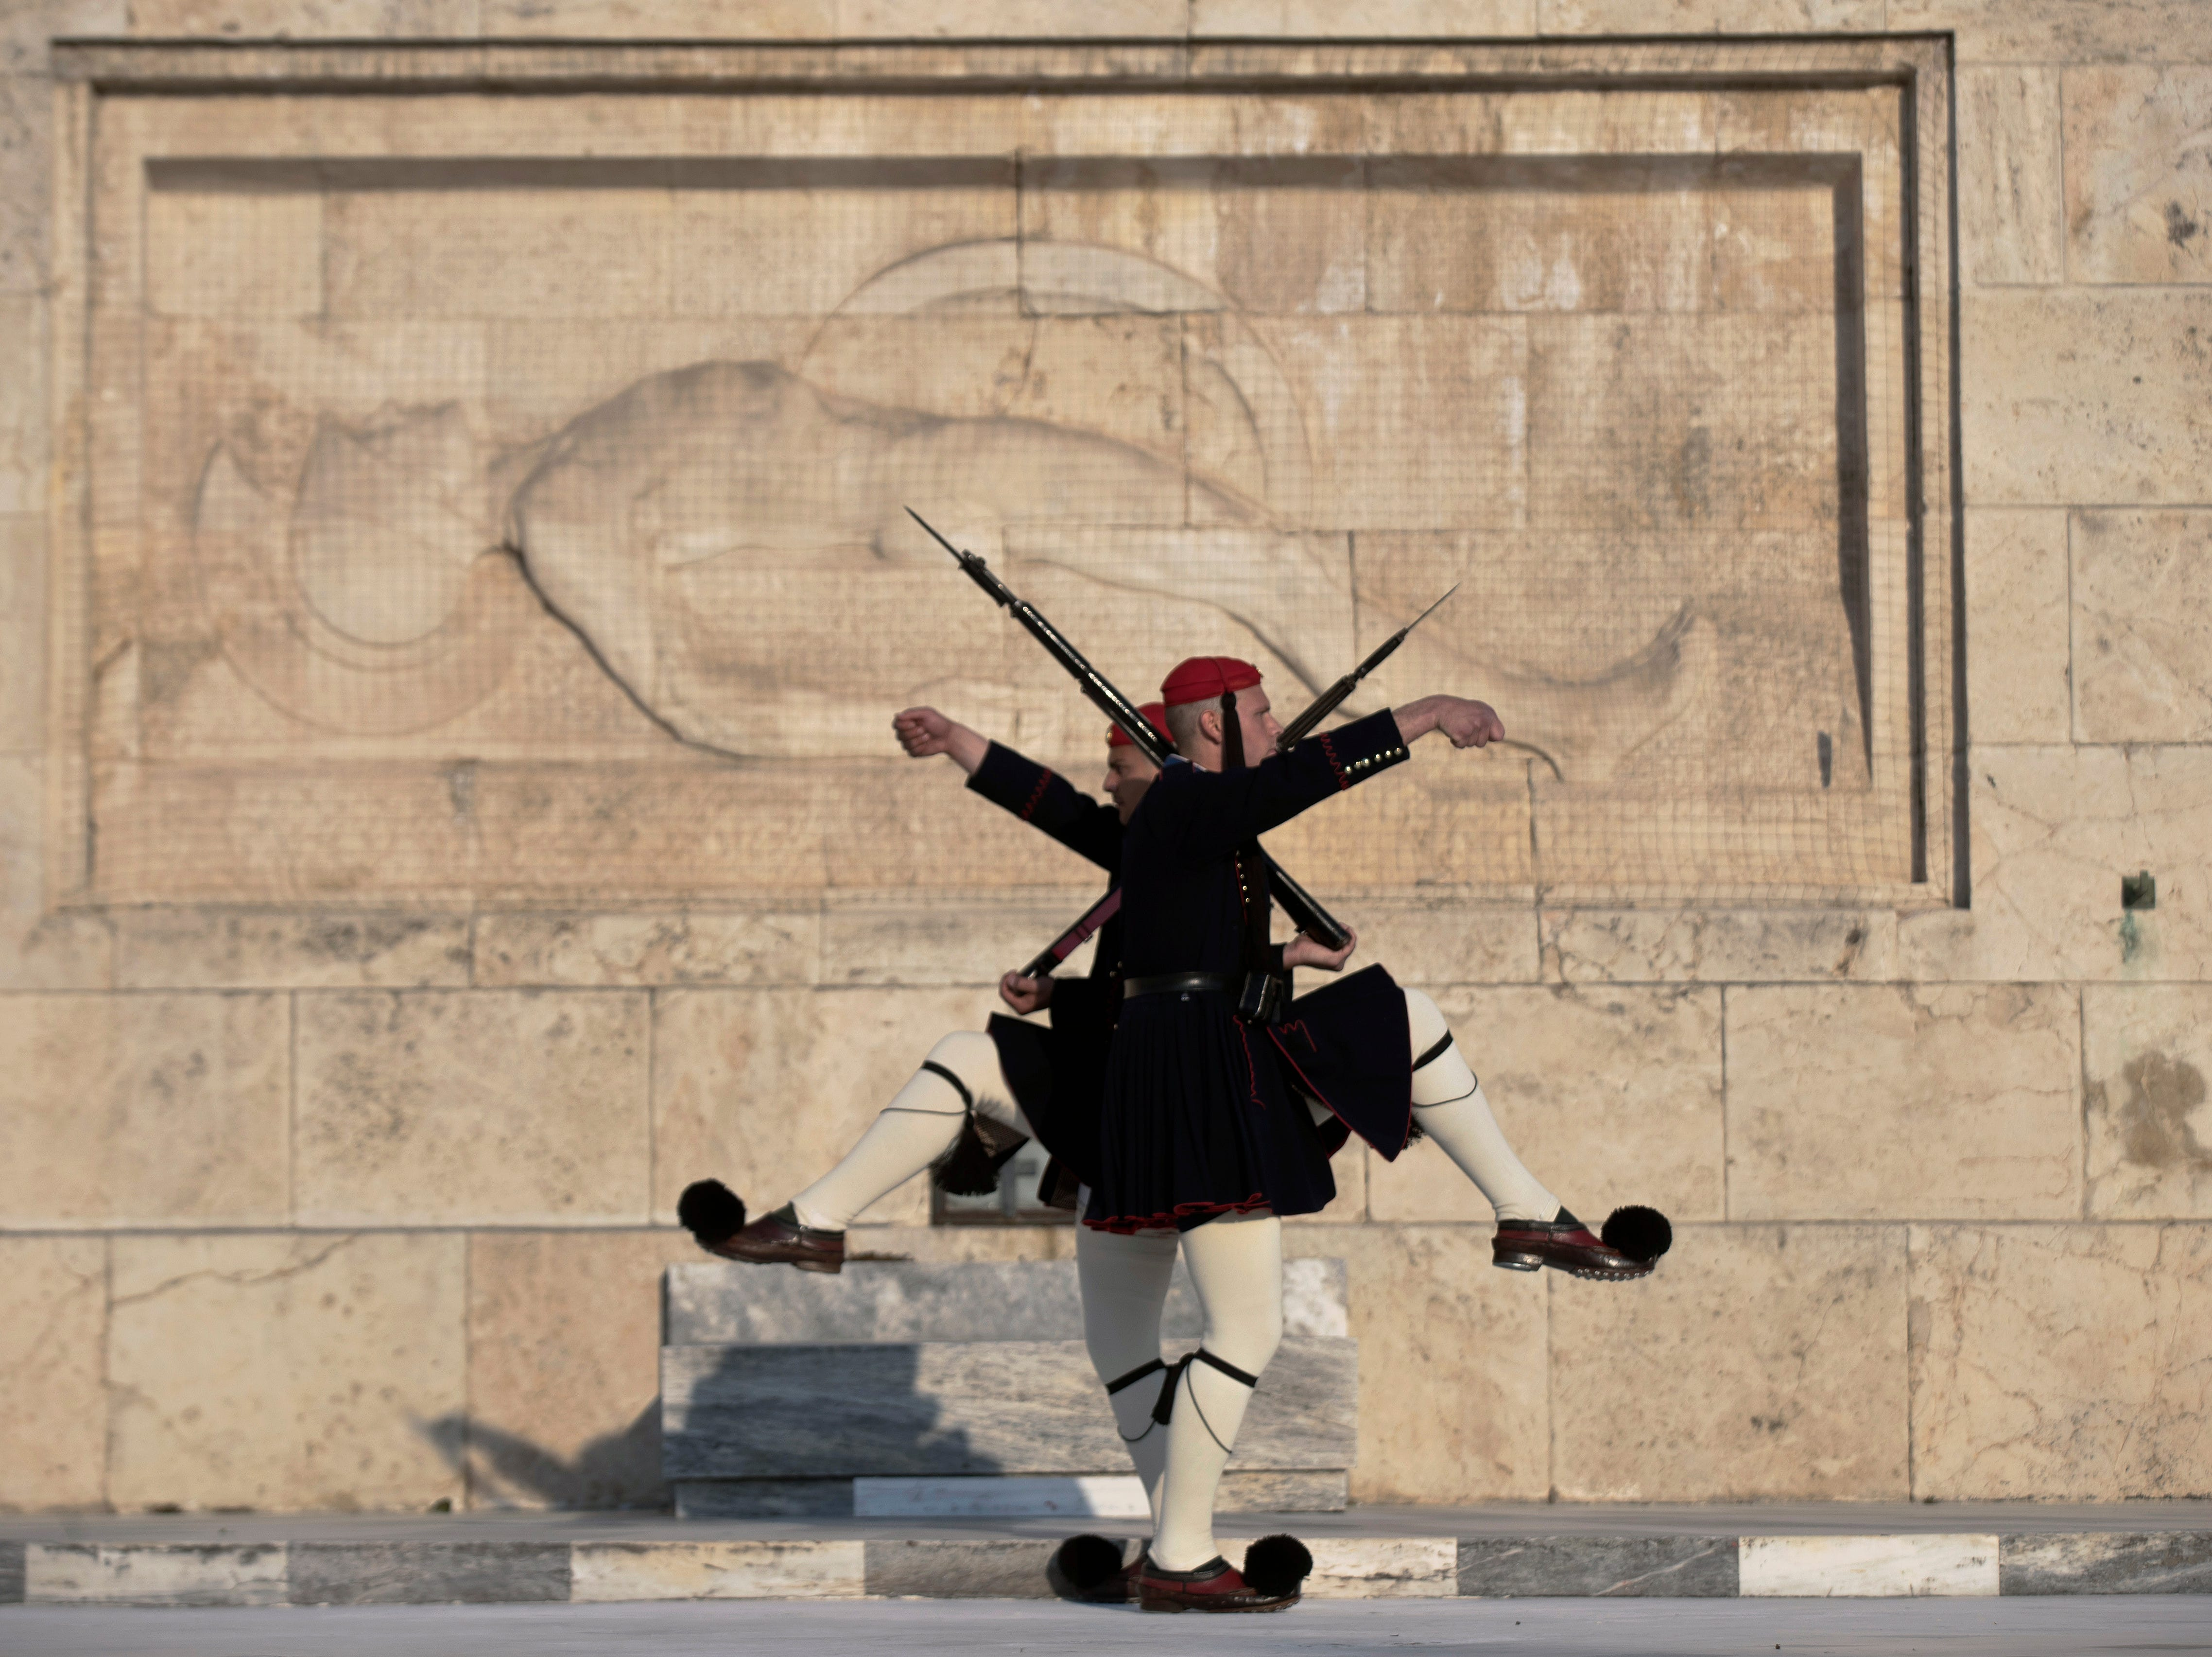 Greek Presidential guards take part in the changing of the guard ceremony, at the tomb of the unknown soldier in front of the Parliament, central Athens, on Wednesday, April 3, 2019.